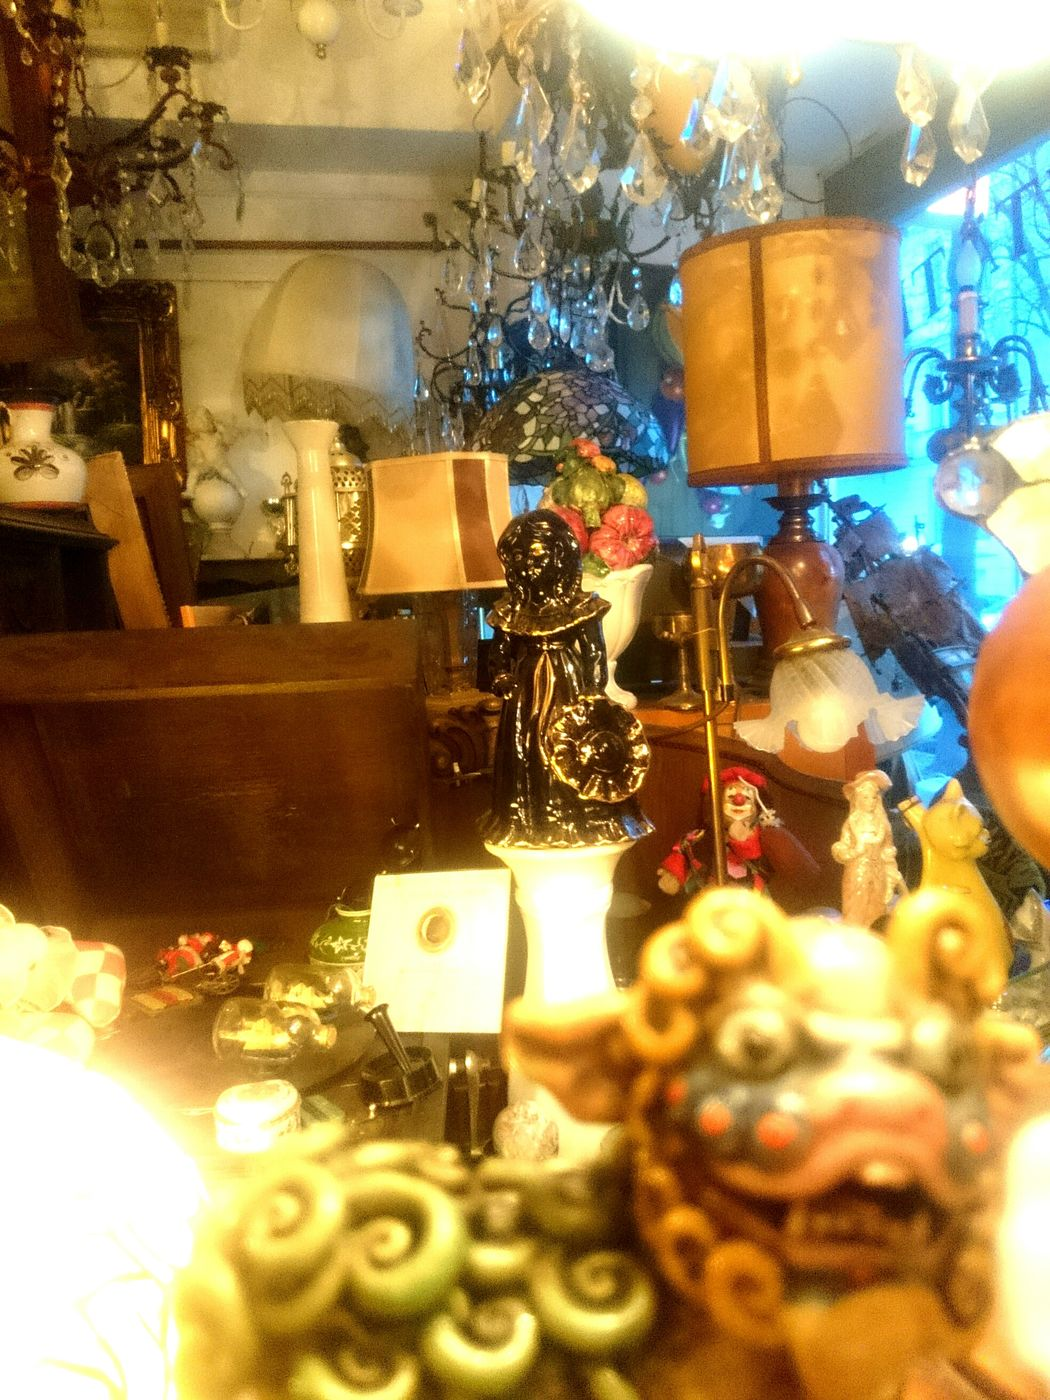 Golden Shop of Things . All Shiny and Colorful Indoors  No People Statues Scenerie Store Antique Shop